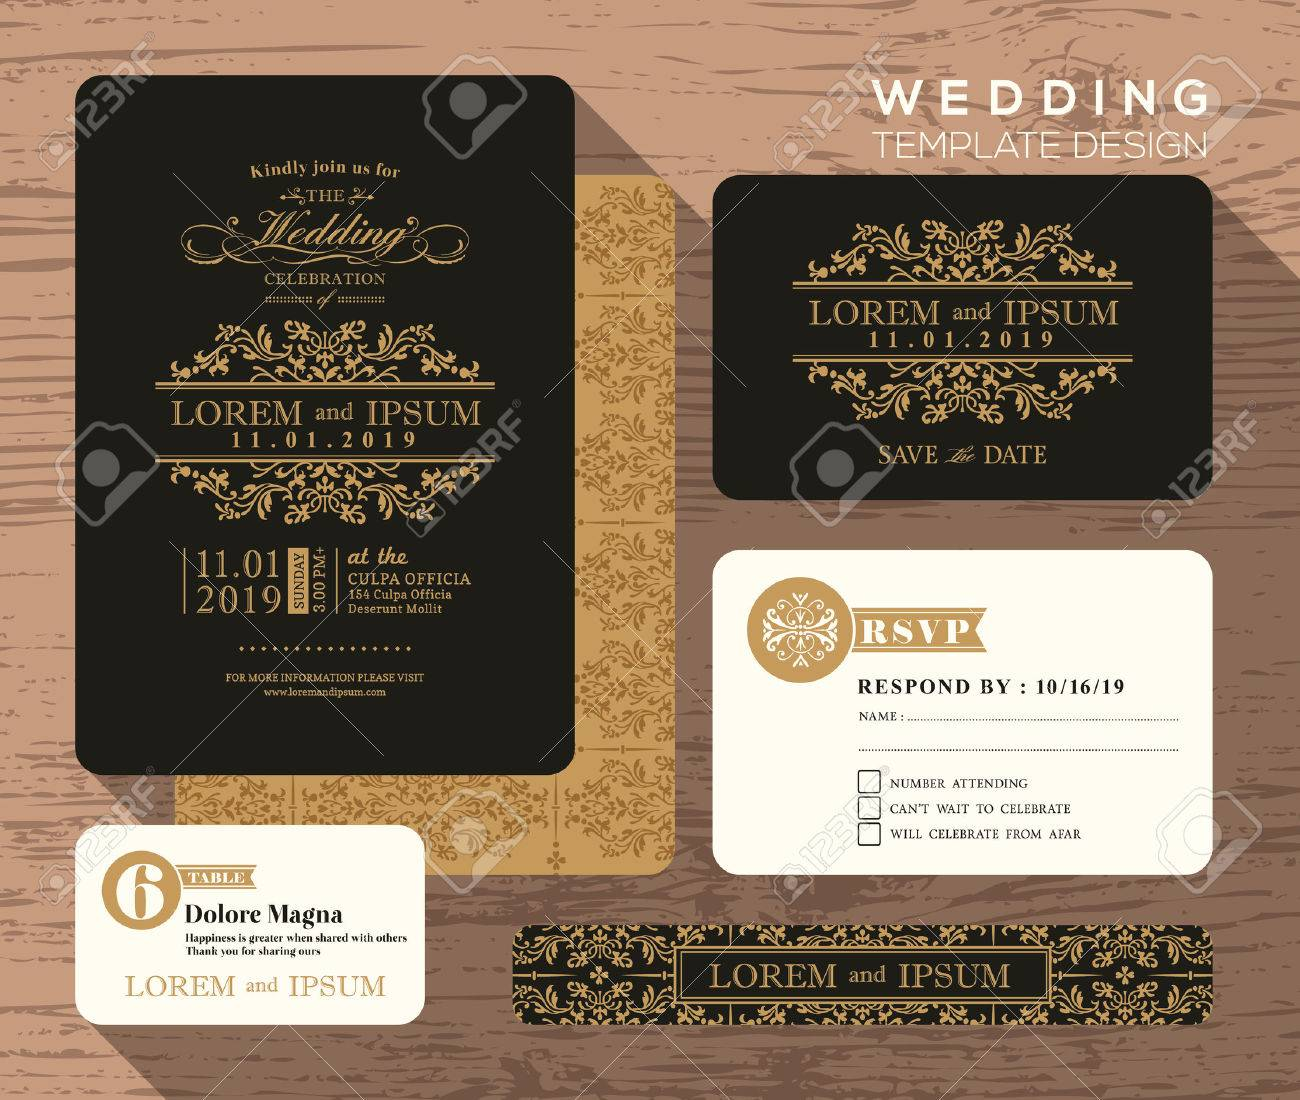 36279628 Vintage classic wedding invitation set design Template Vector place card response card save the date Stock Vector vintage classic wedding invitation set design template vector,Invitation And Response Card Set